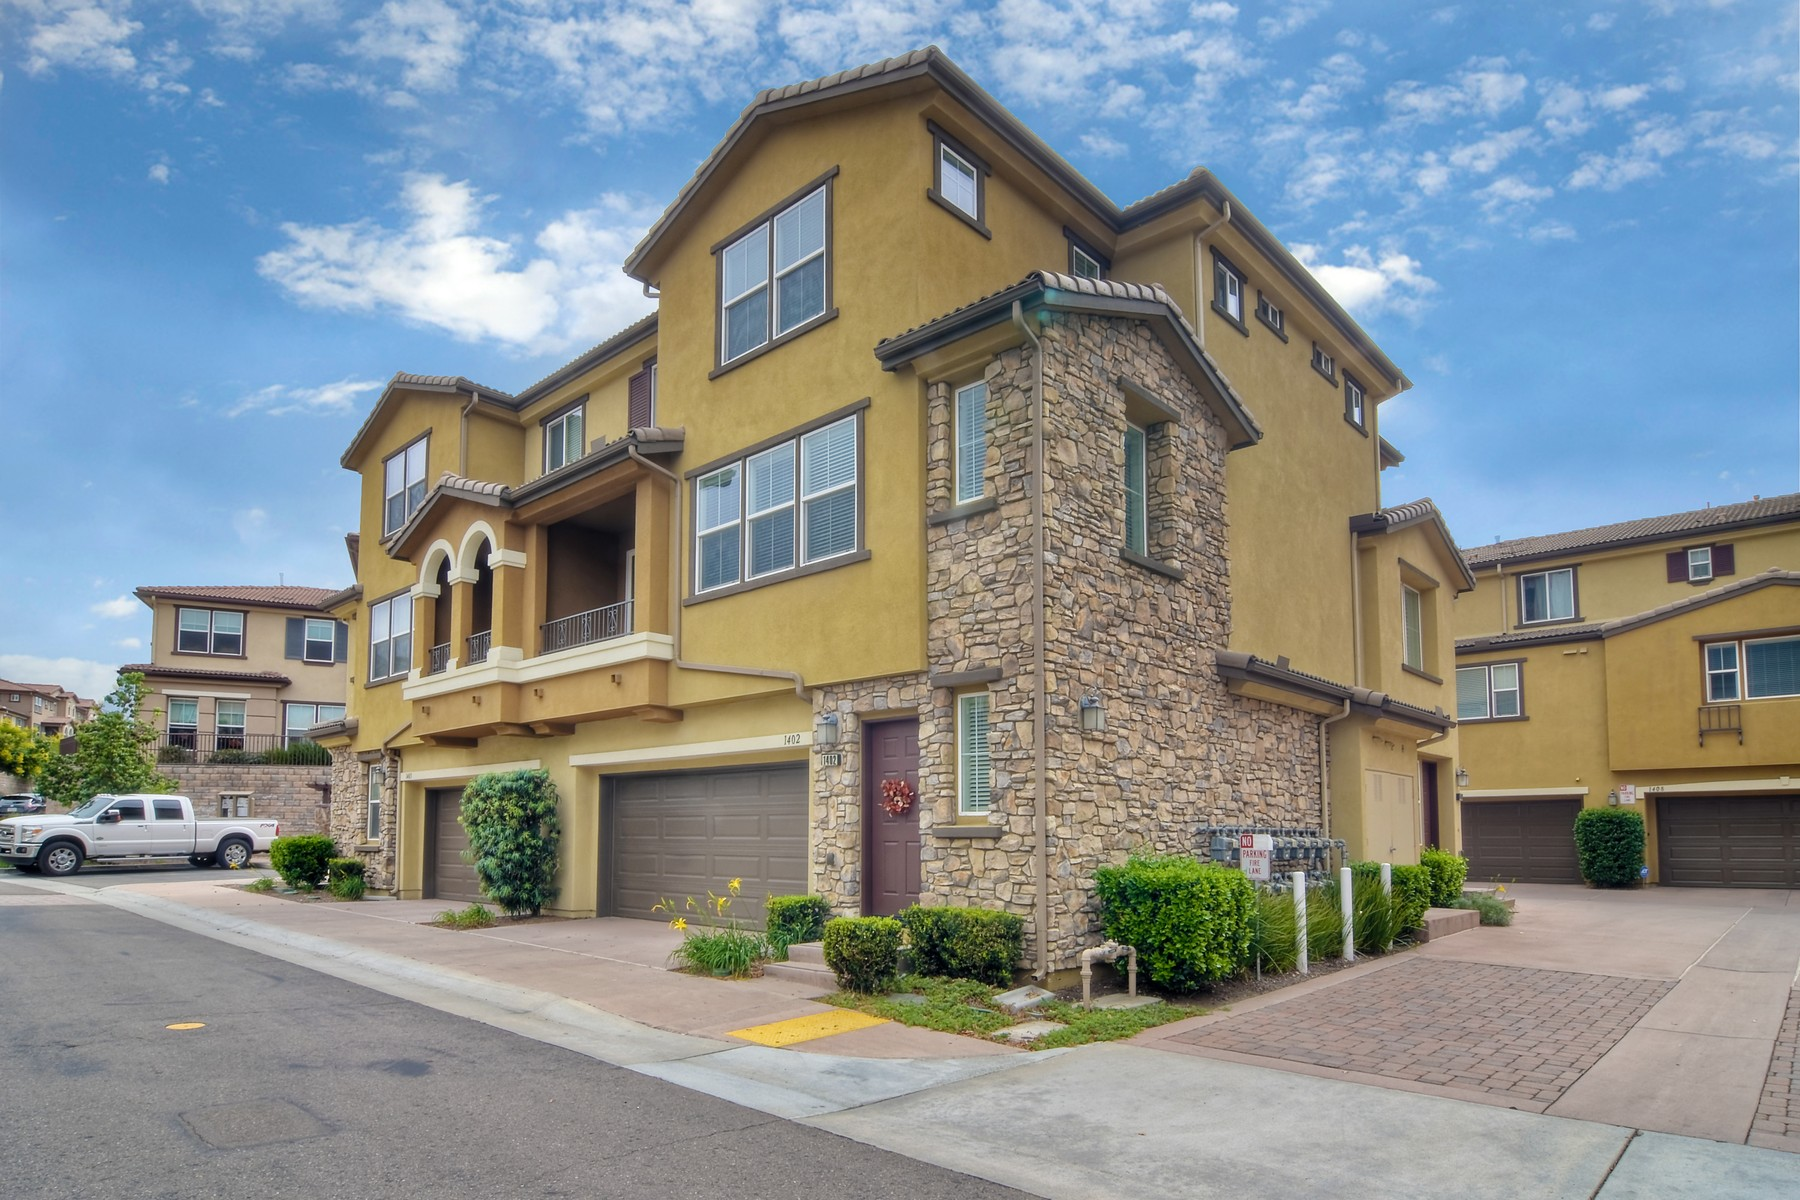 townhouses for Sale at 1402 Calabria St Santee, California 92071 United States